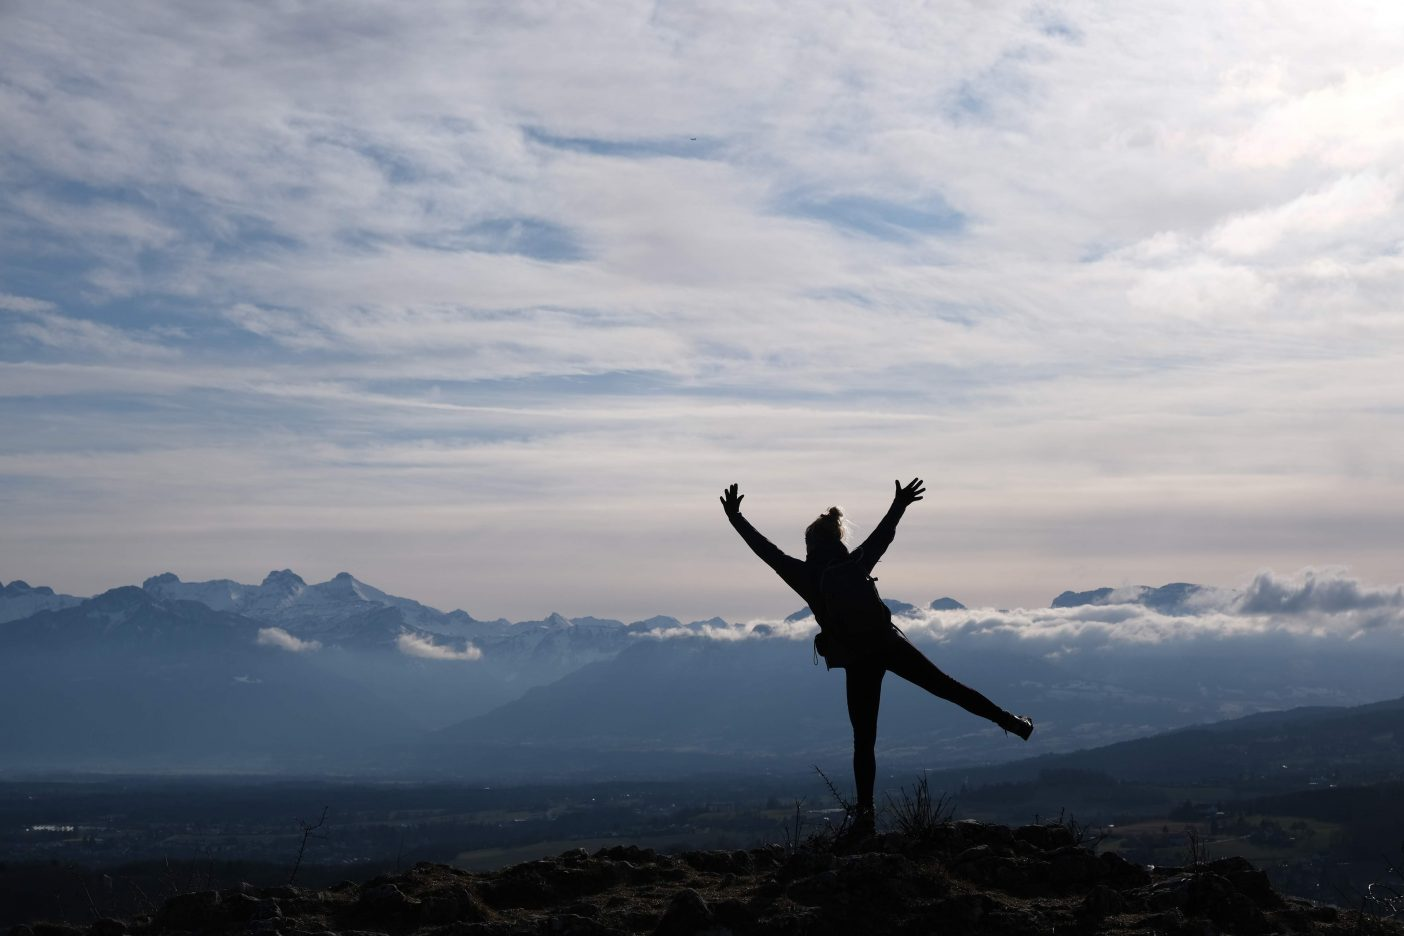 Finding Mental Well-Being When the Mountains Are Closed